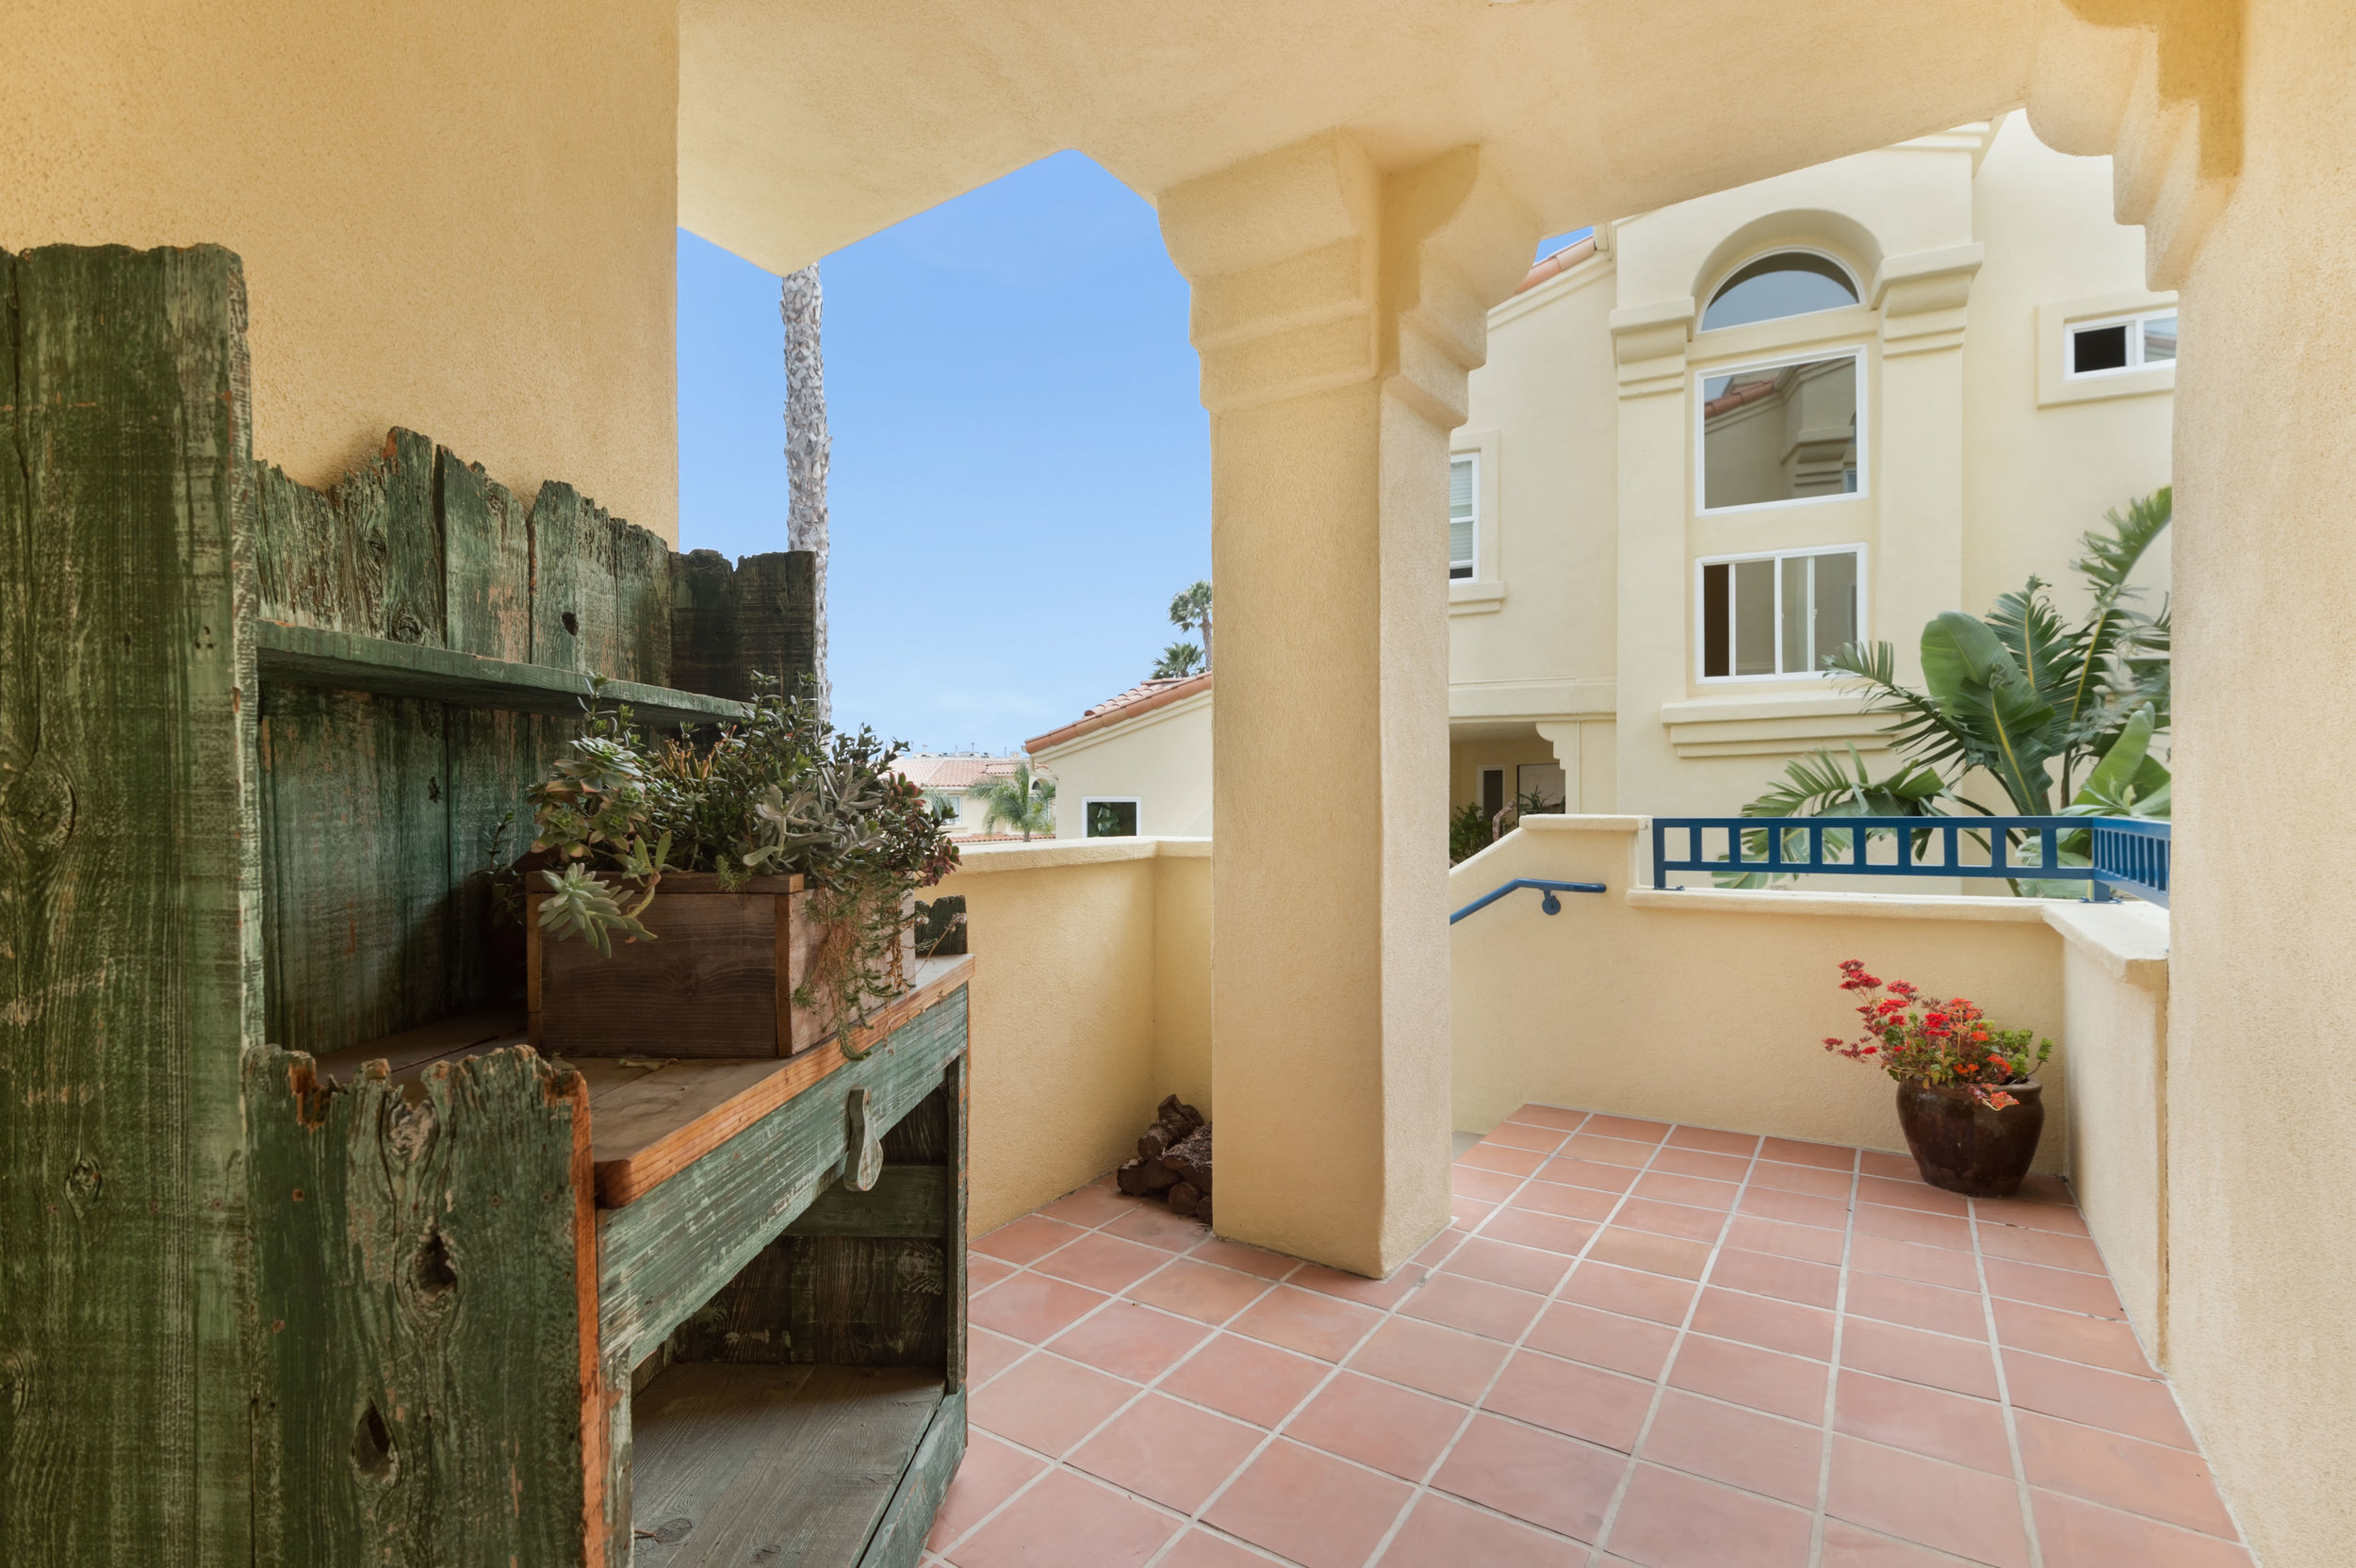 007 entry 2 6463 Zuma View Place Malibu For Sale The Malibu Life Team Luxury Real Estate.jpg